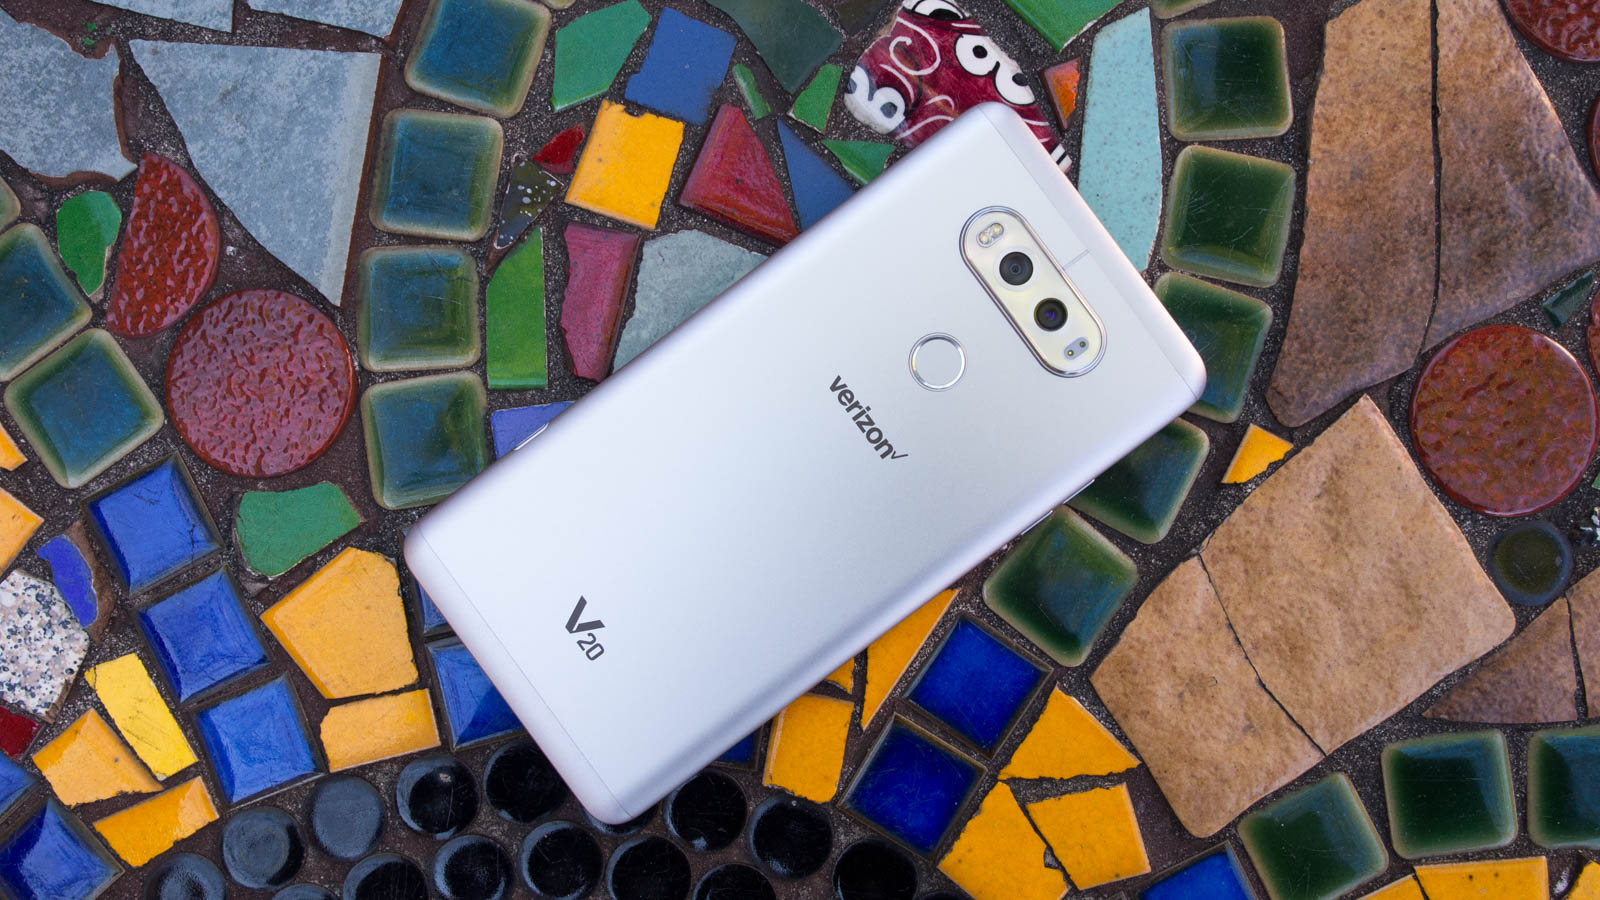 LG V30 confirmed for August 31 announcement